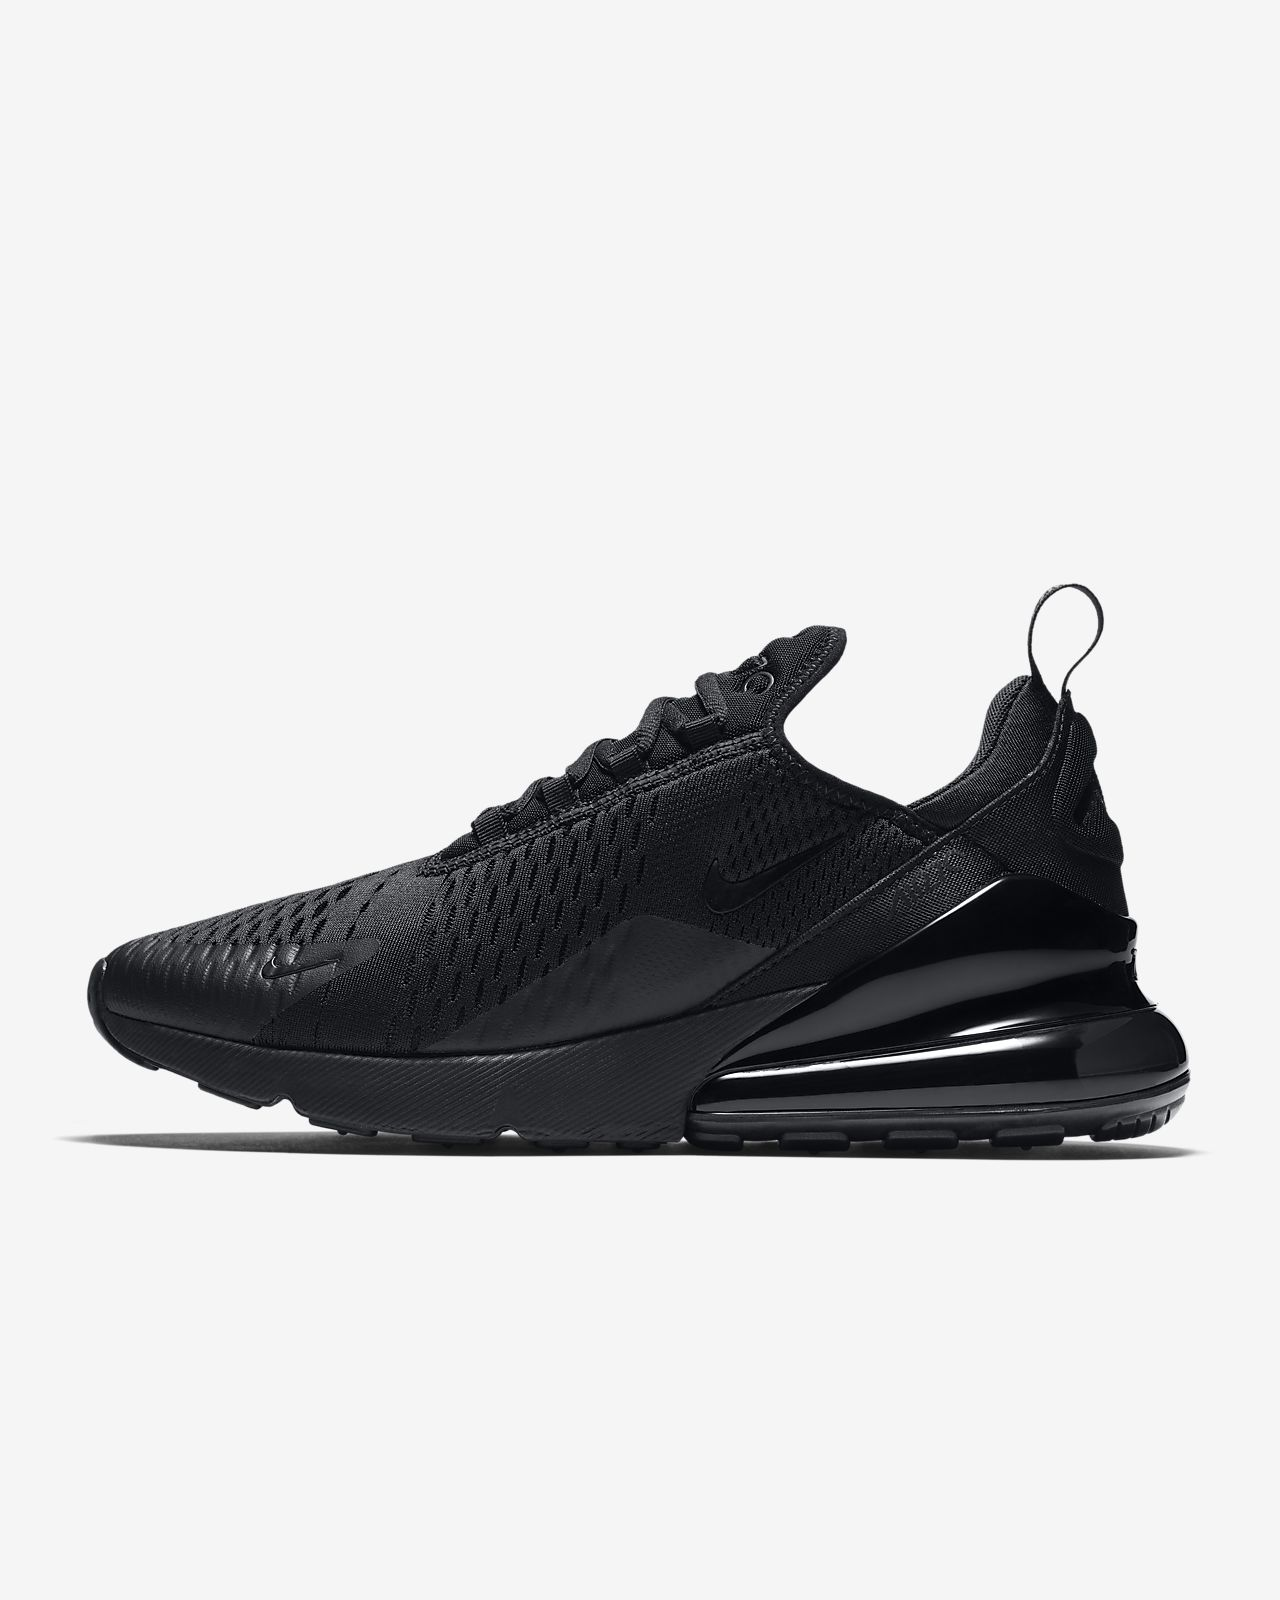 meet e15a0 f74be Men s Shoe. Nike Air Max 270